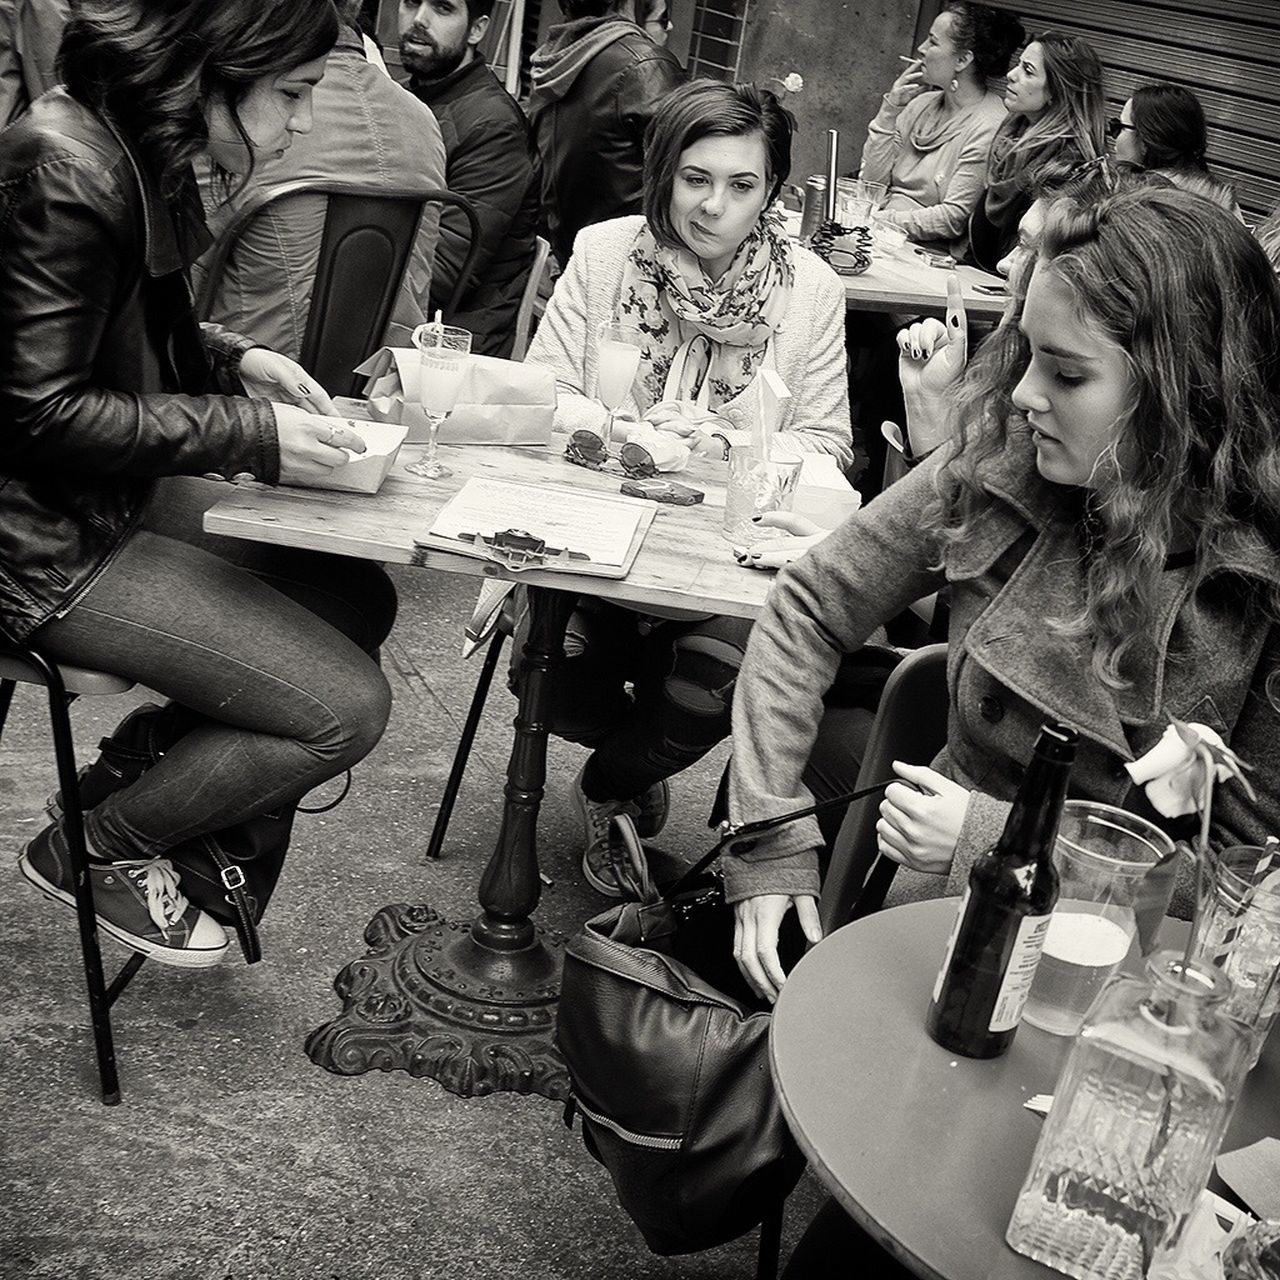 Maltby Street Looking At Camera Beautiful Woman Streetphotography Streetphoto_bw Leicacamera Darkheartofeurope Togetherness Real People Young Women Women